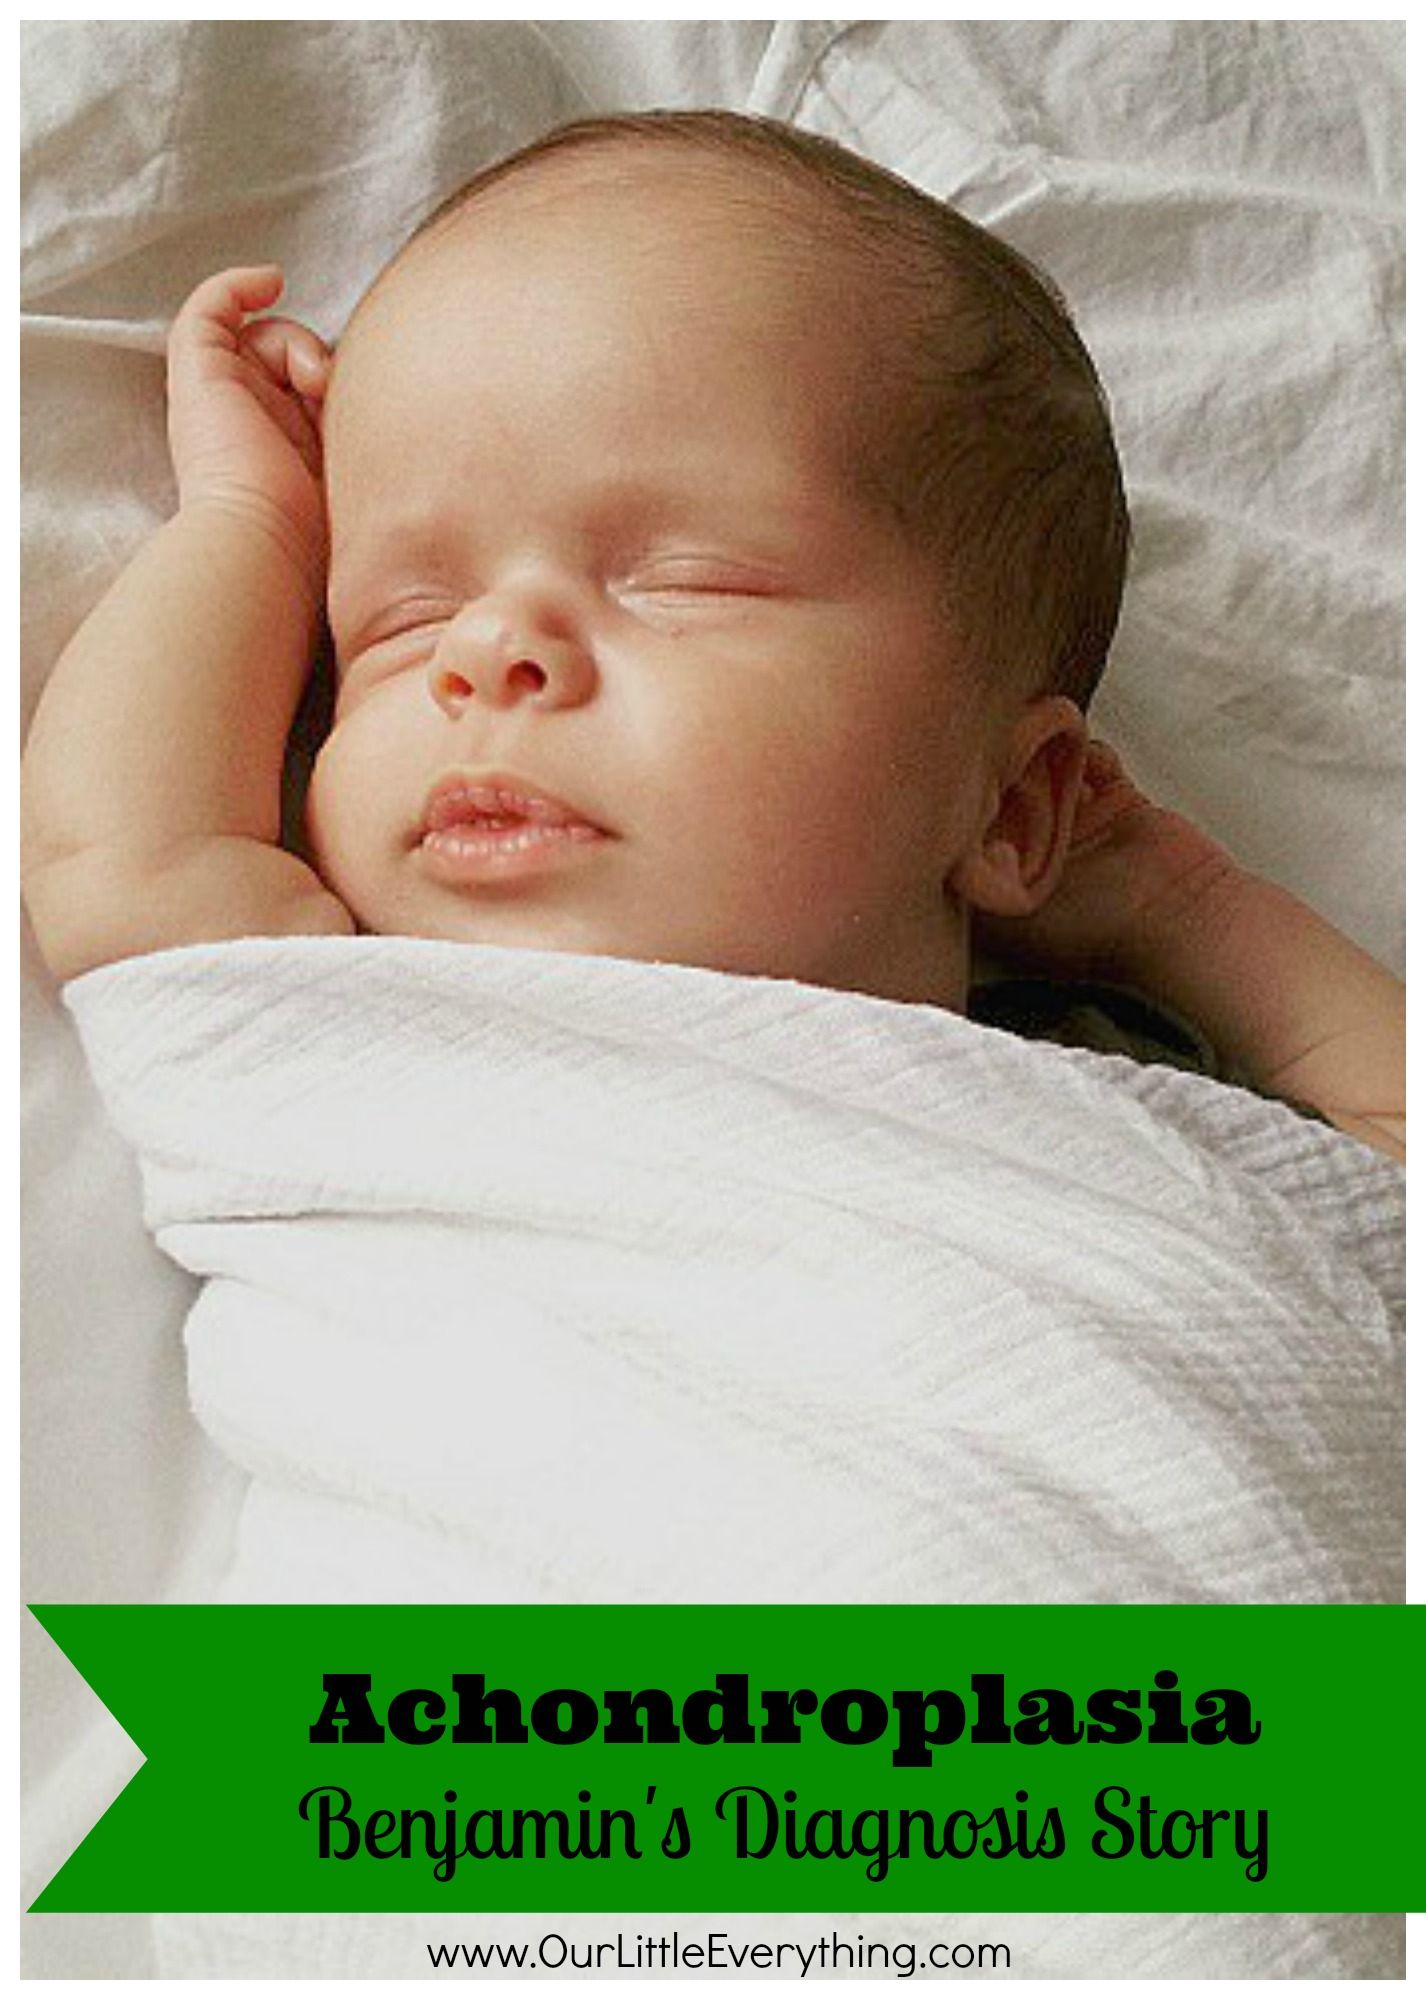 Our son Benjamin's Achondroplasia diagnosis story. From ...